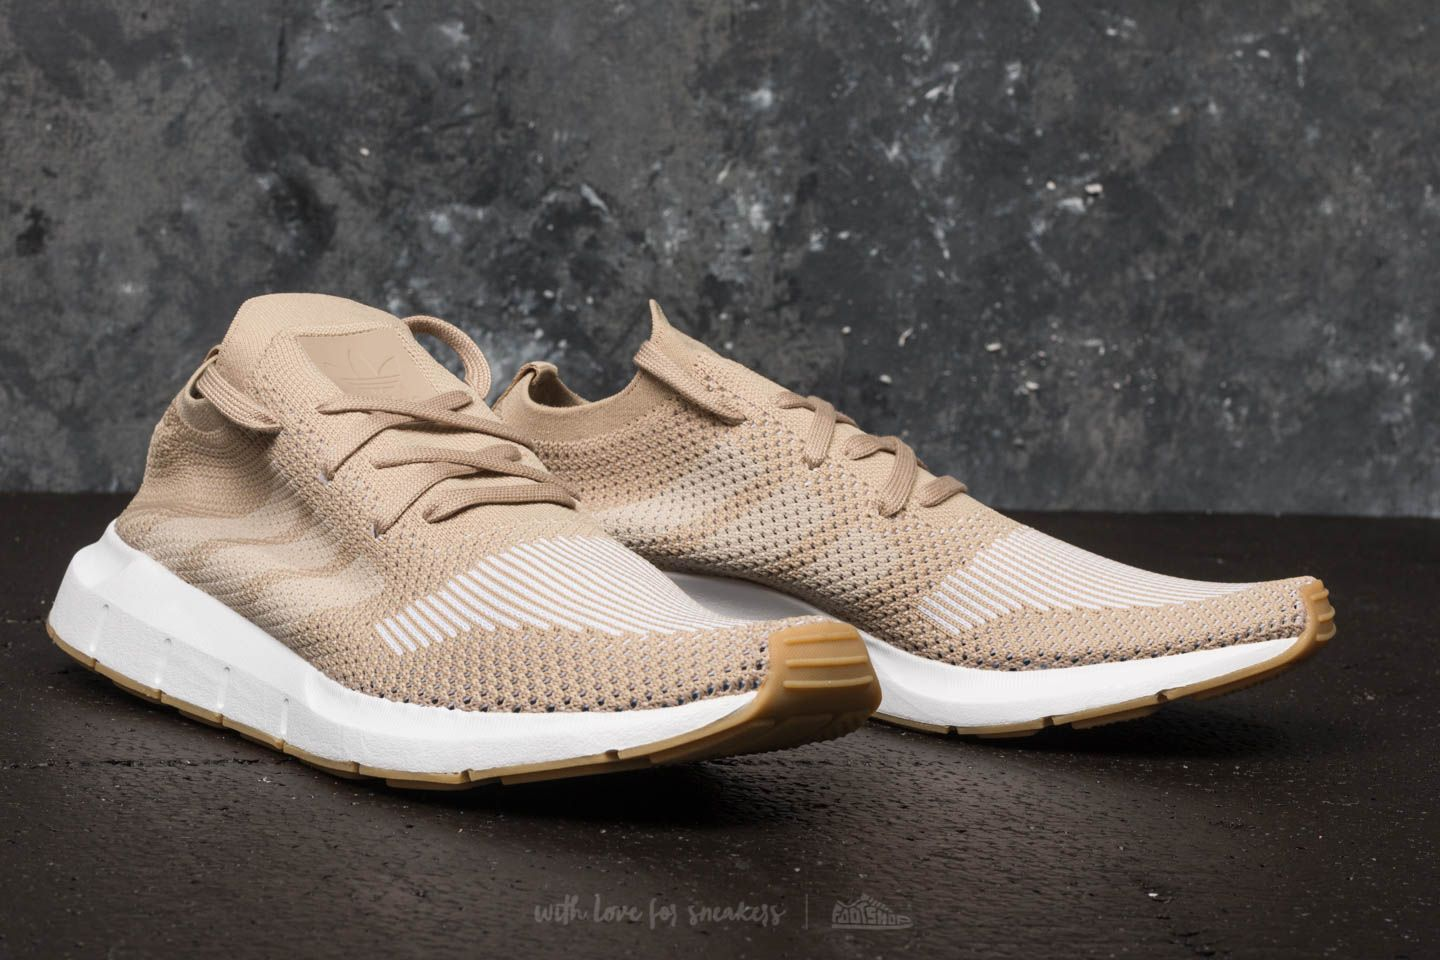 4b7a9684d4e6a0 adidas Swift Run Primeknit Raw Gold  Off White  Ftw White at a great price